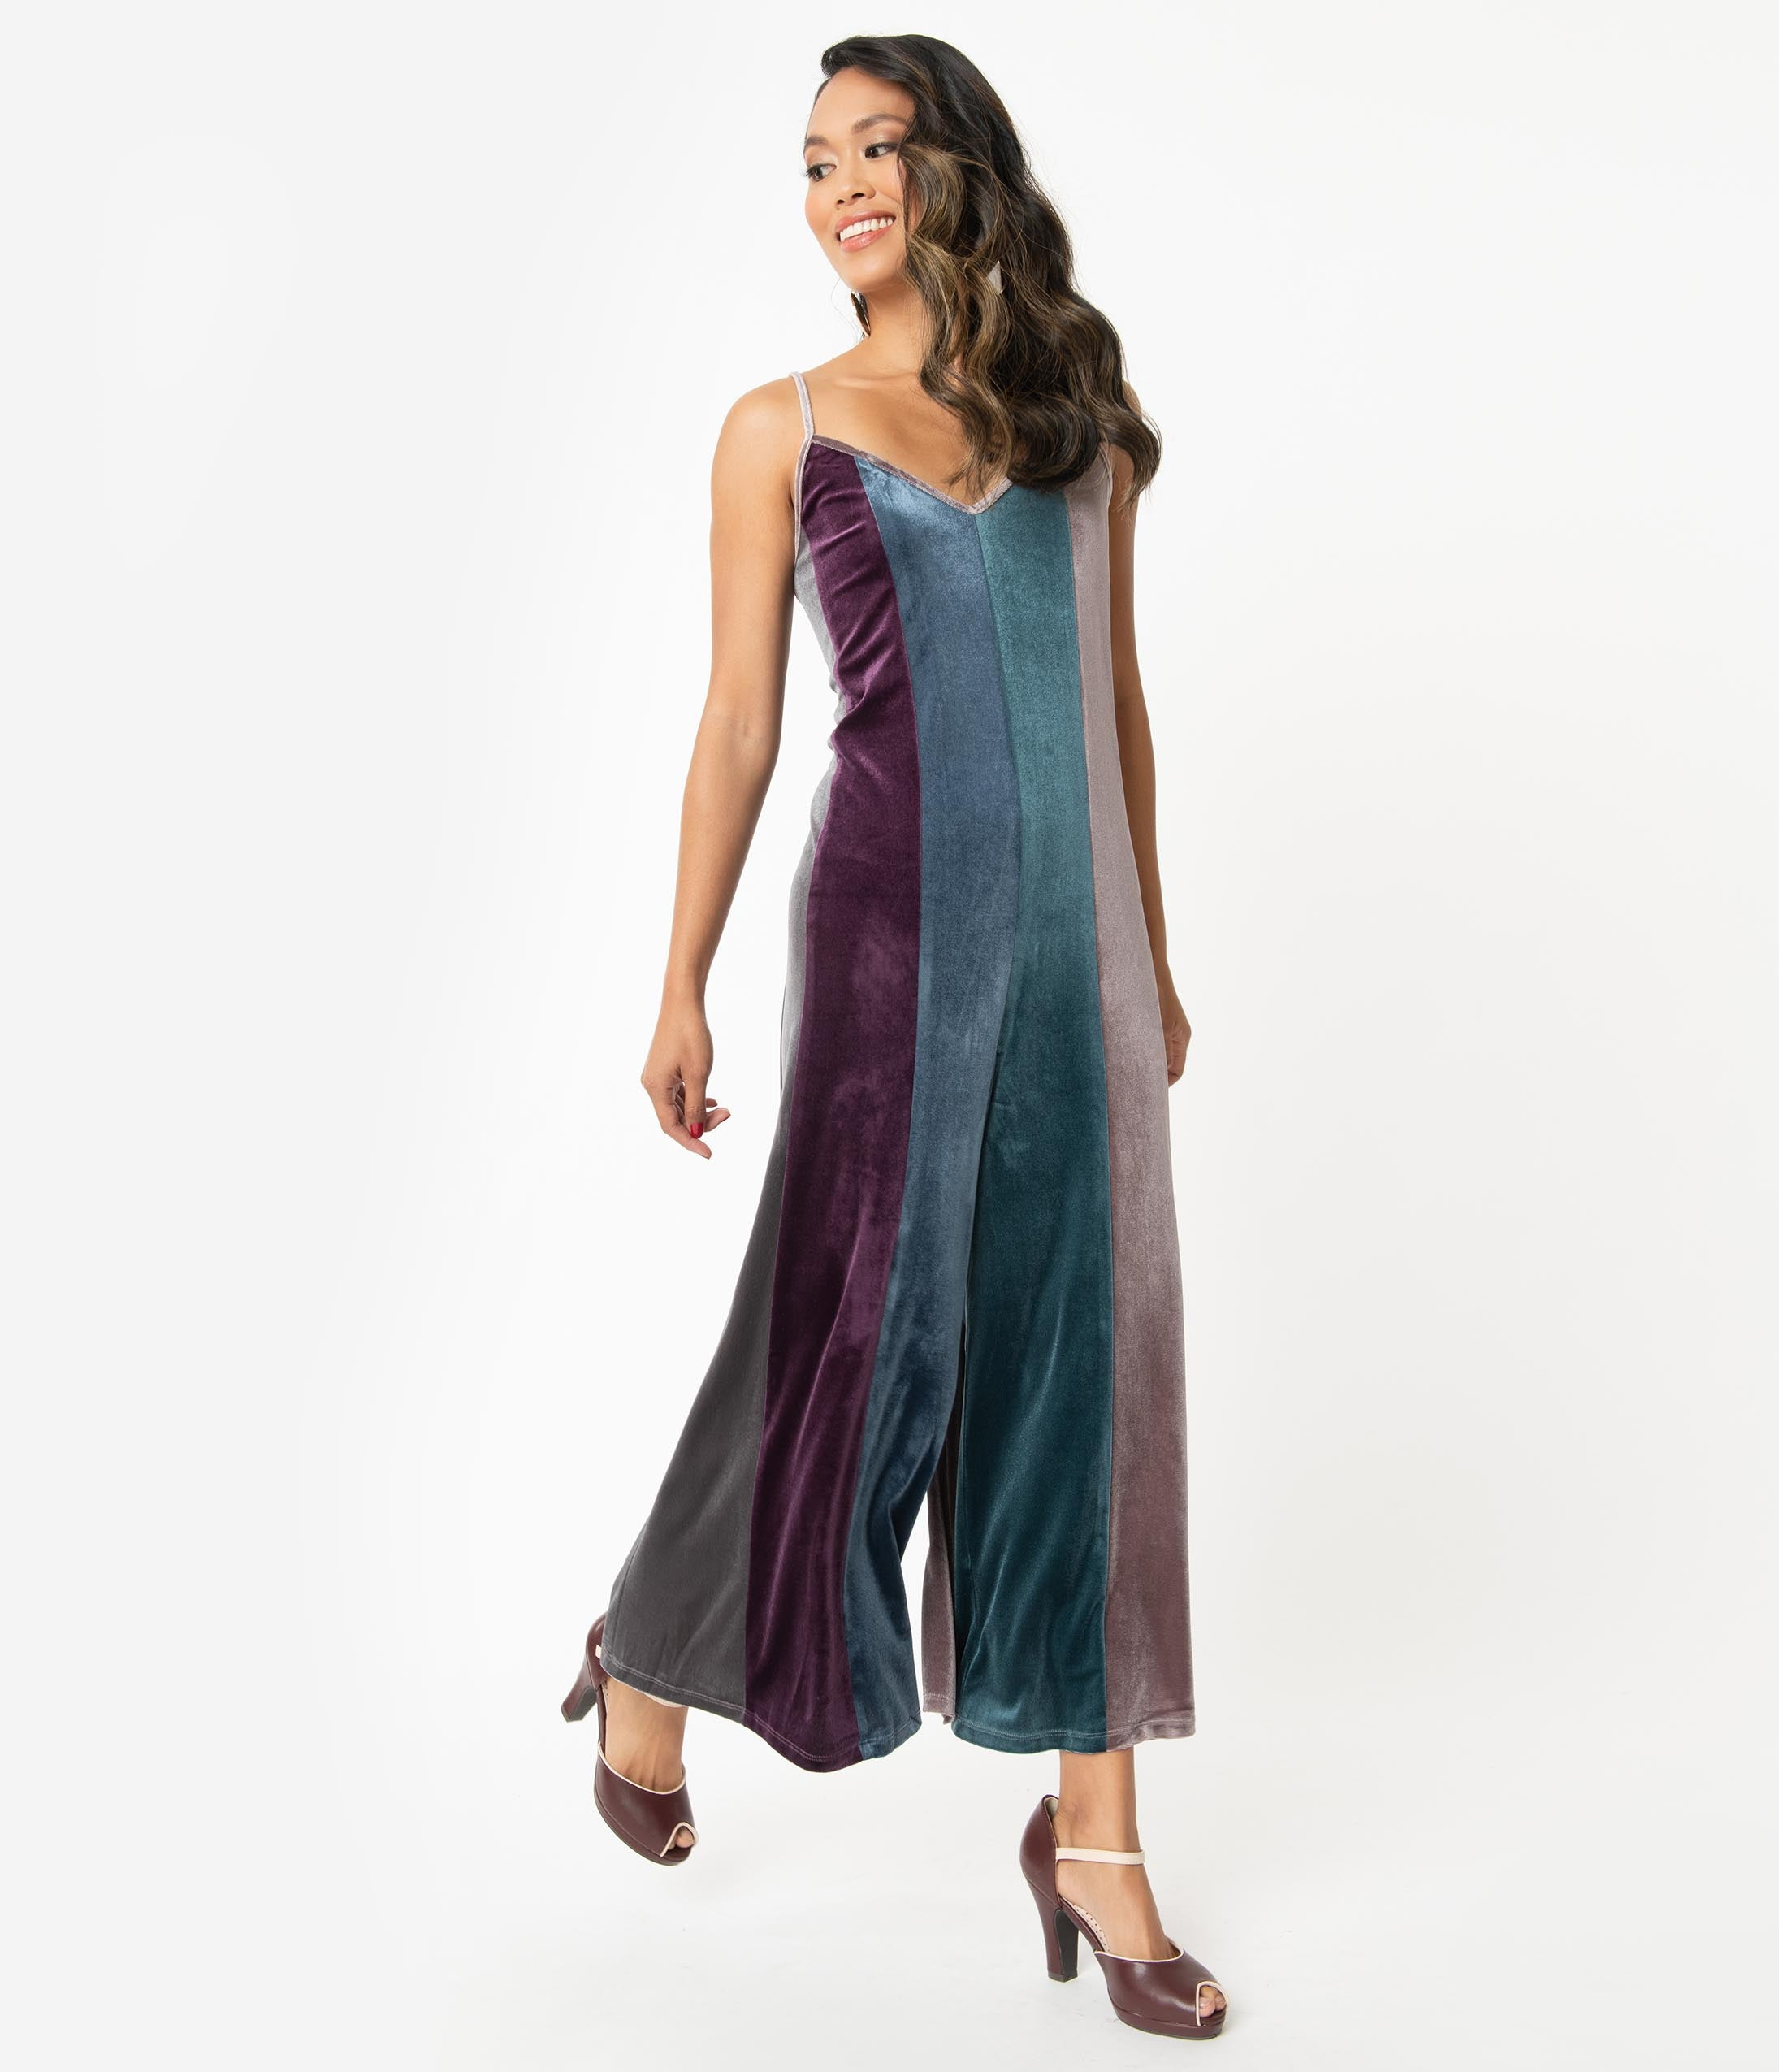 70s Jumpsuit | Disco Jumpsuits – Sequin, Striped, Gold, White, Black Retro Style Multicolor Velvet Wide Leg Jumpsuit $62.00 AT vintagedancer.com